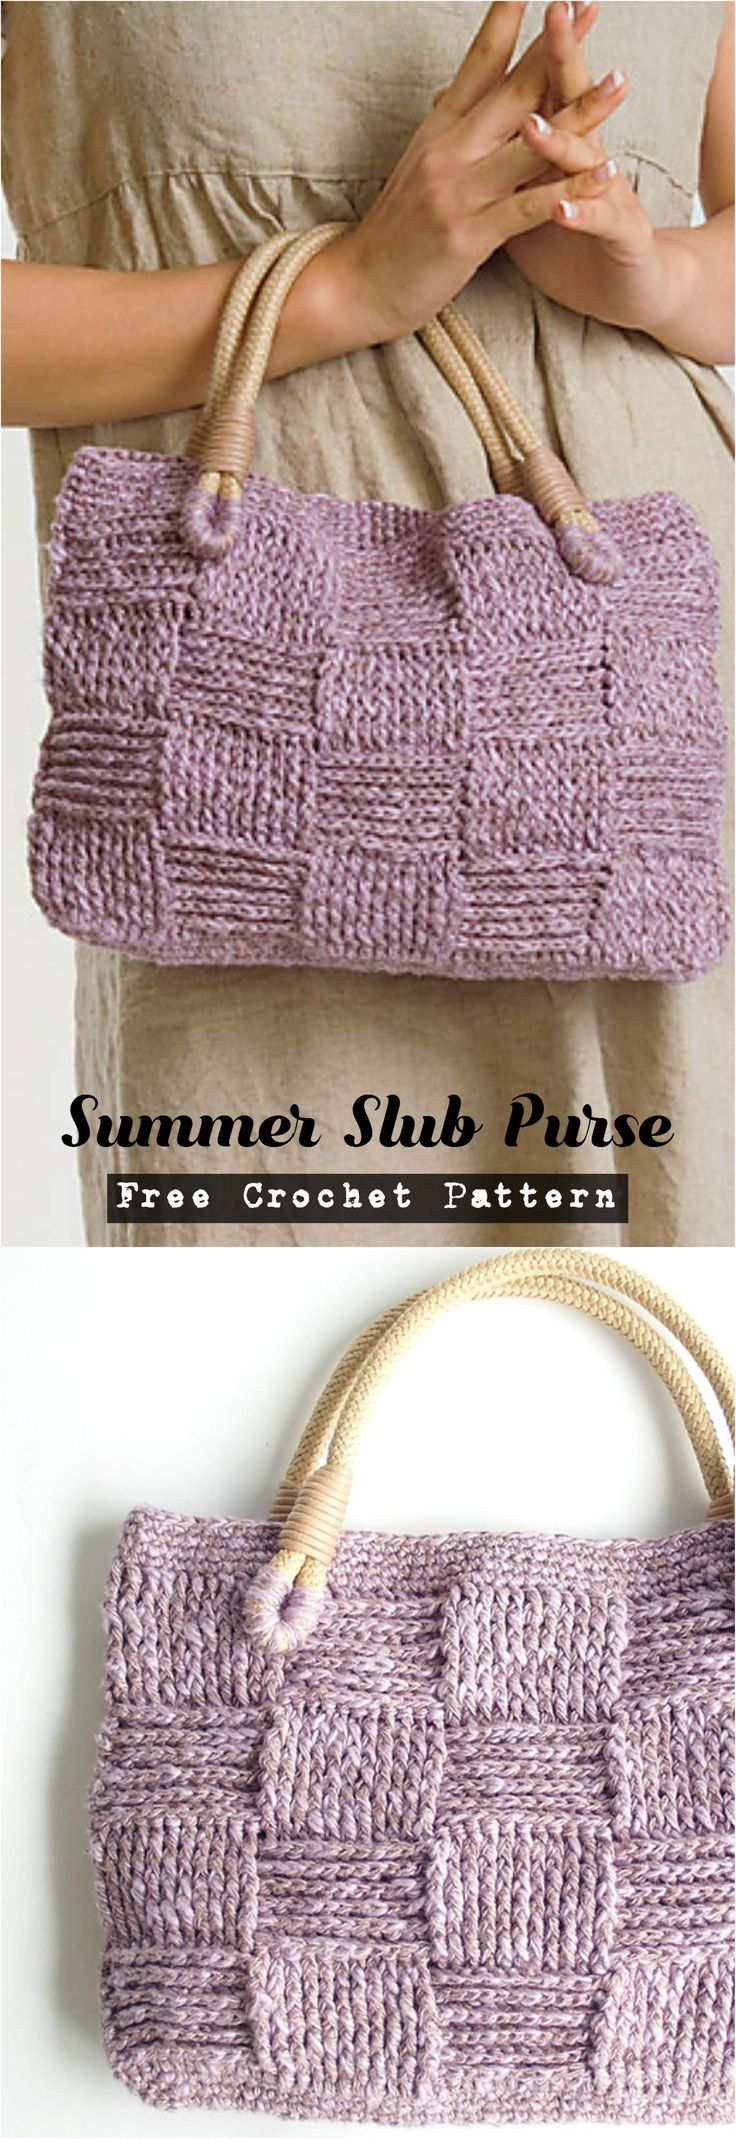 Crochet Summer Club Purse